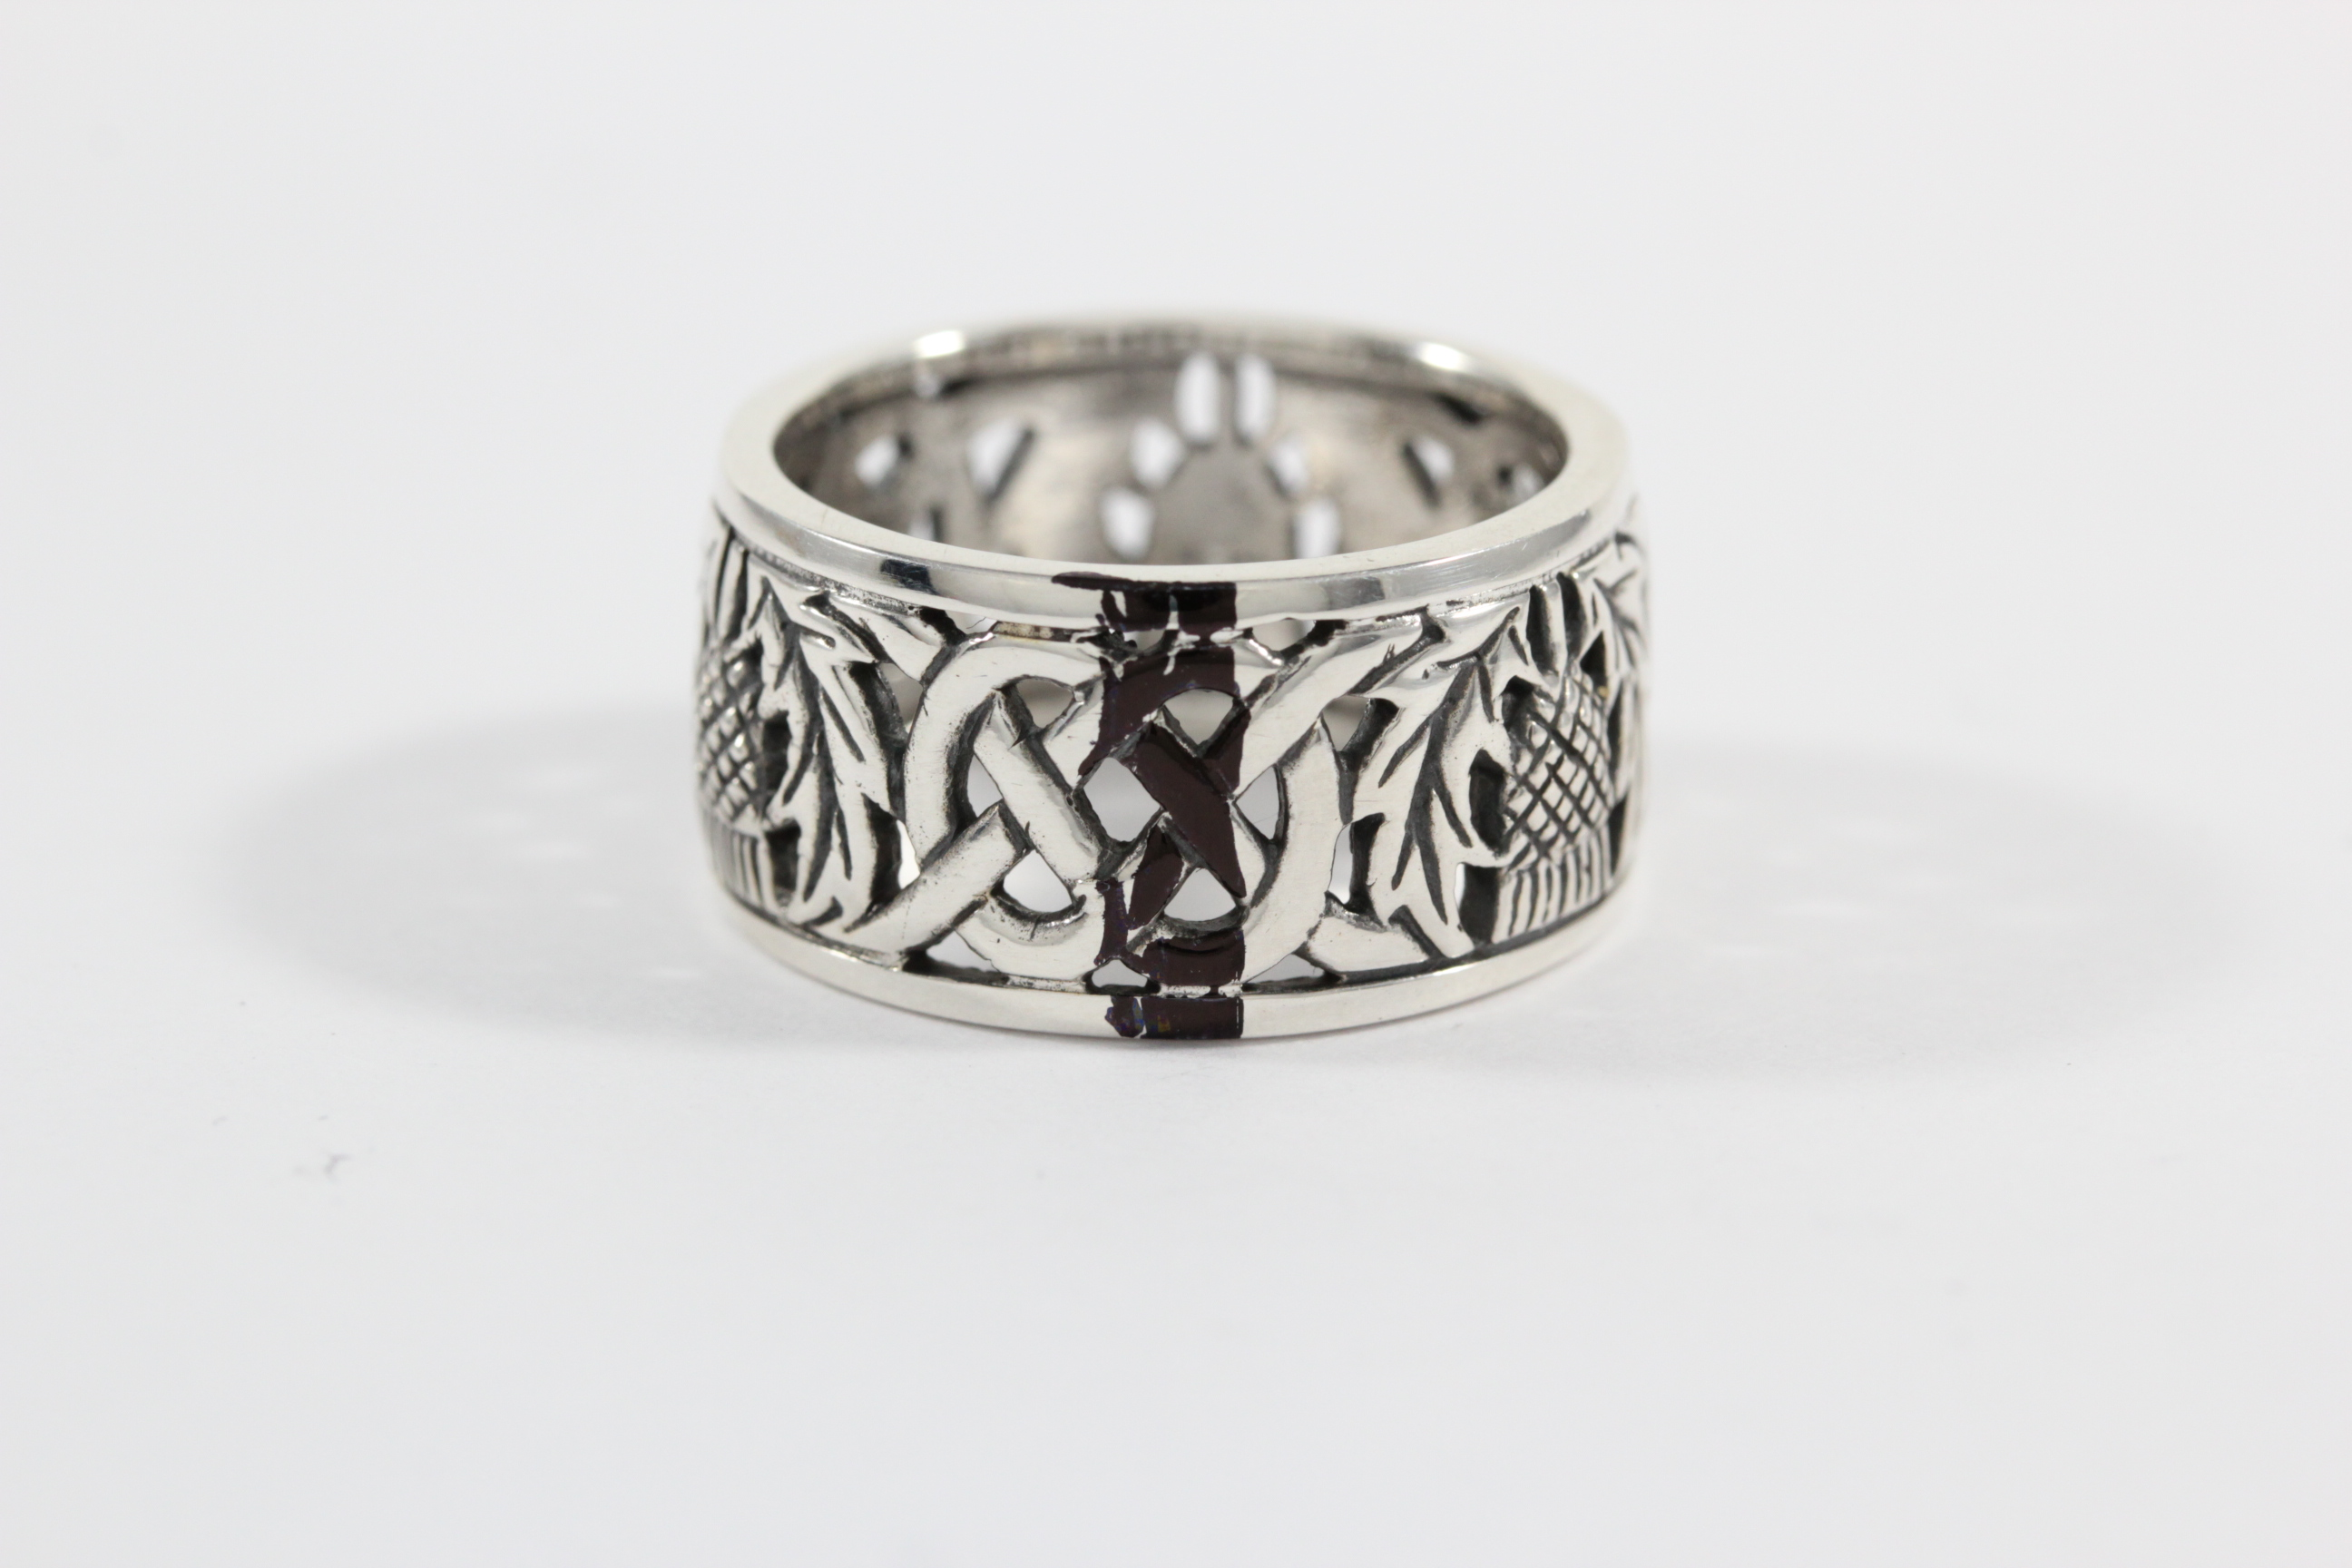 Can You Resize A Pattern Ring